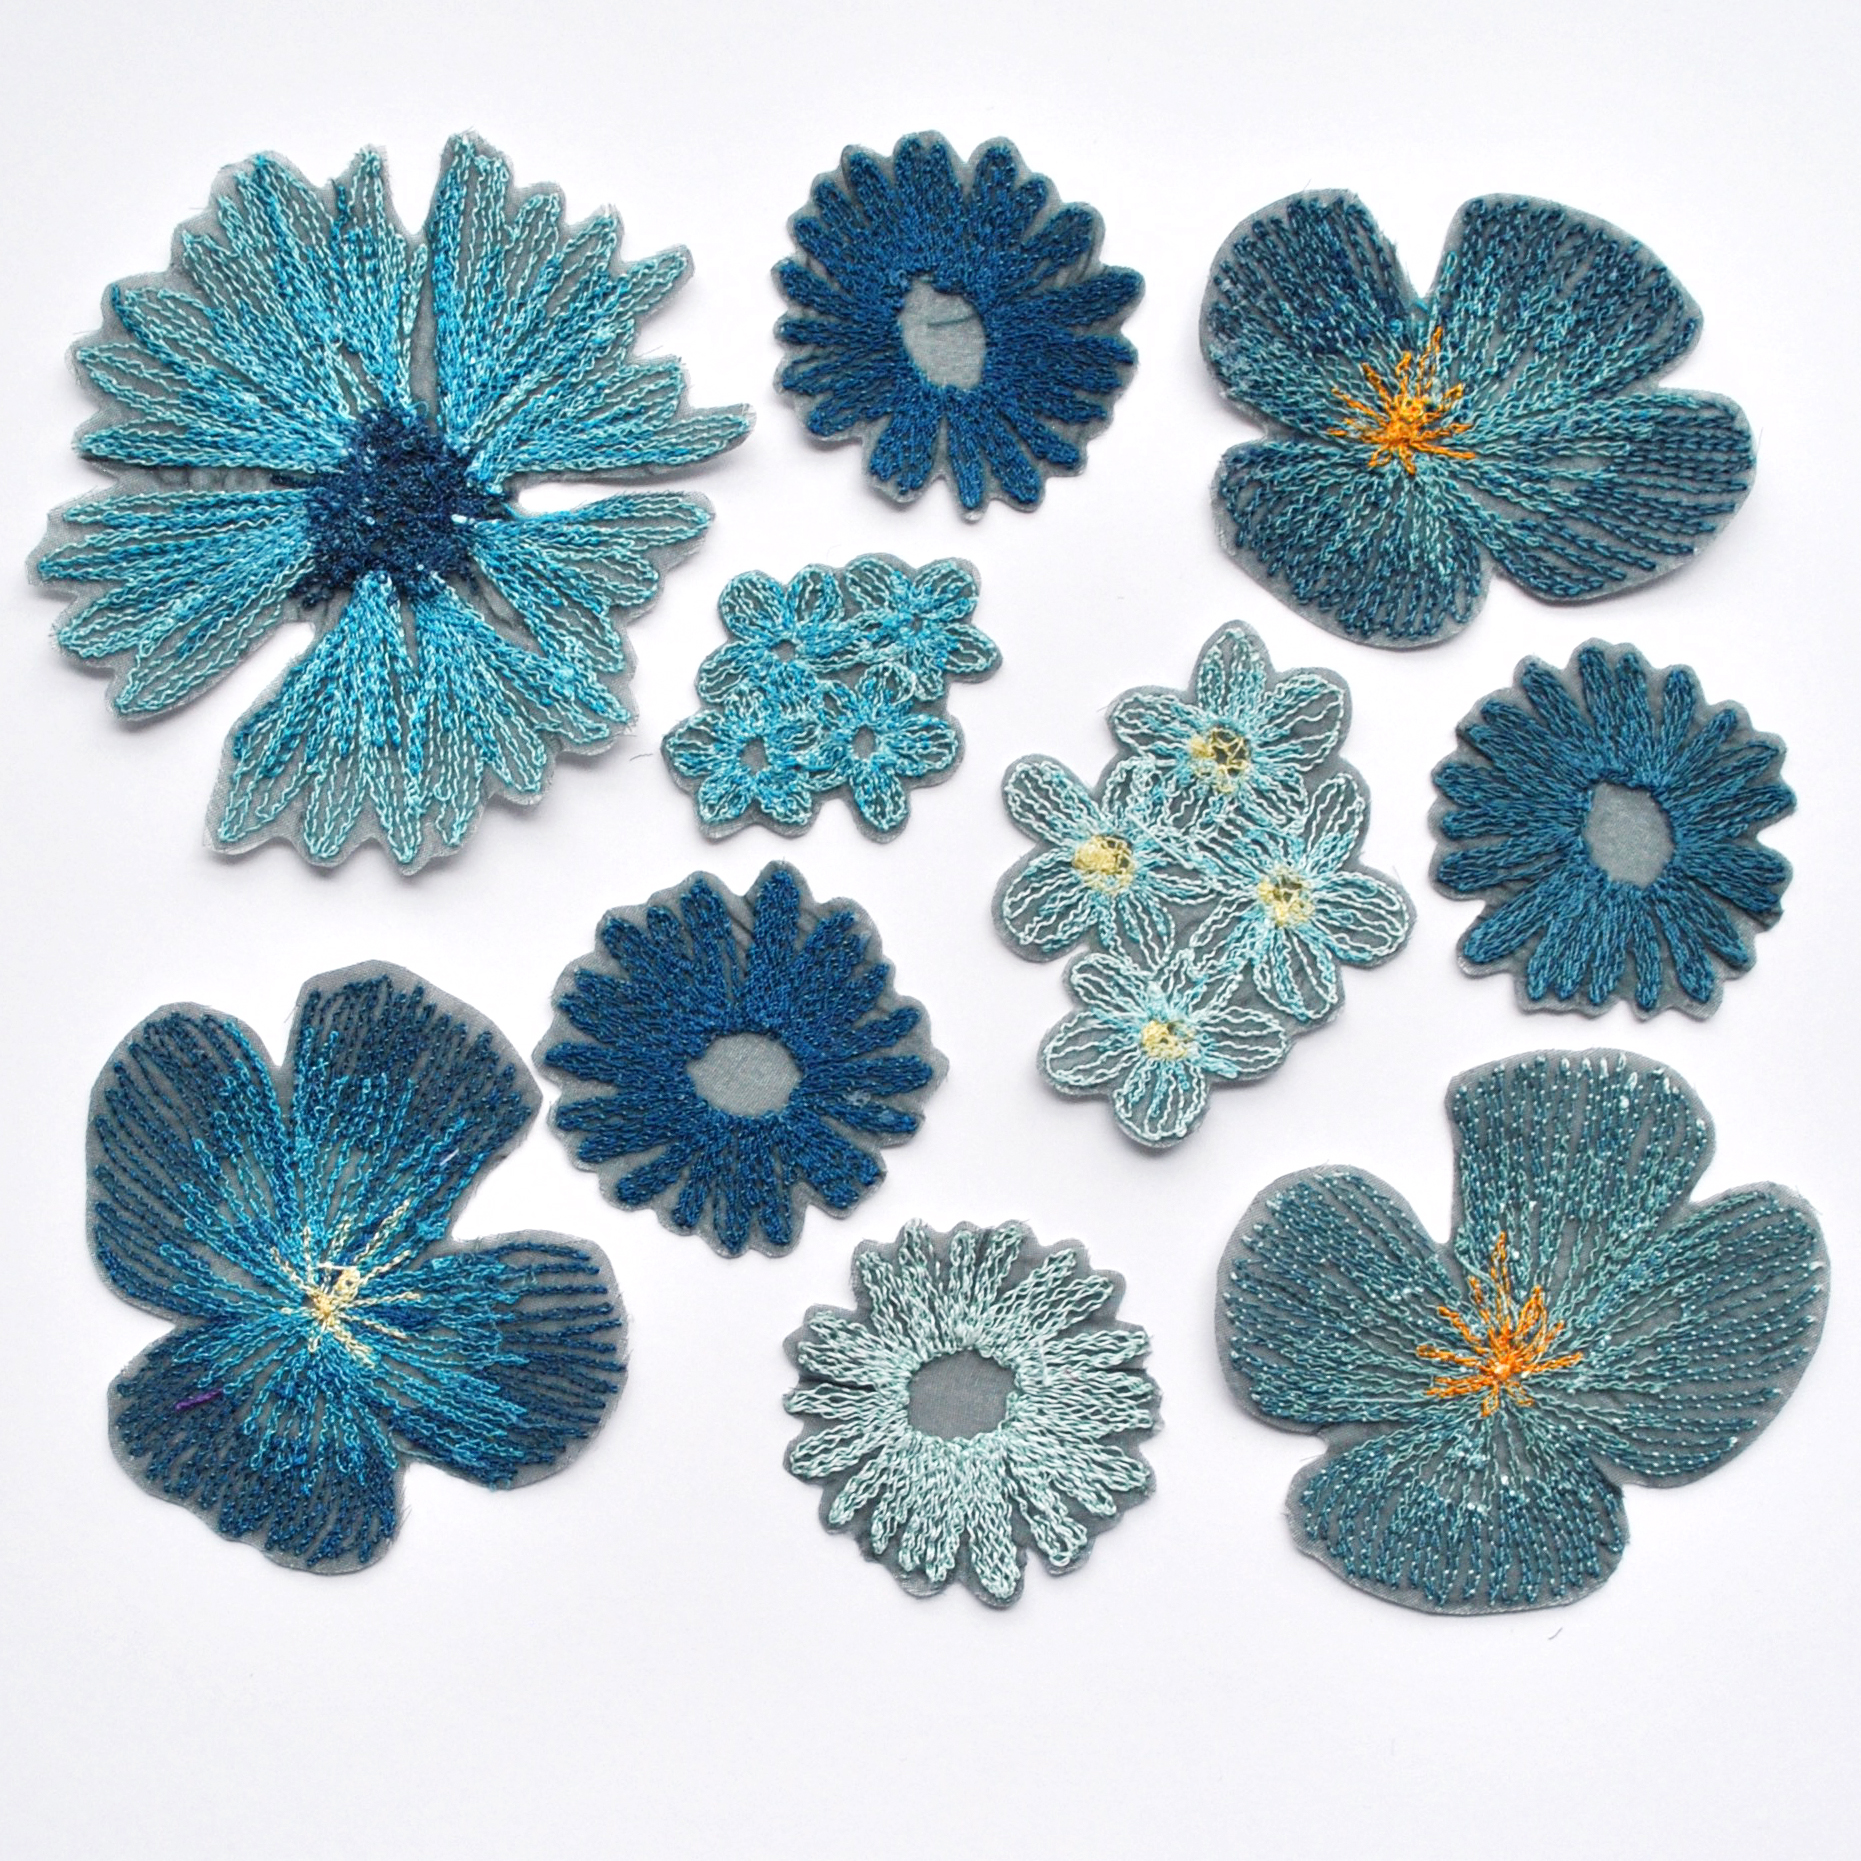 Blue Flower Patches: 10 Pack